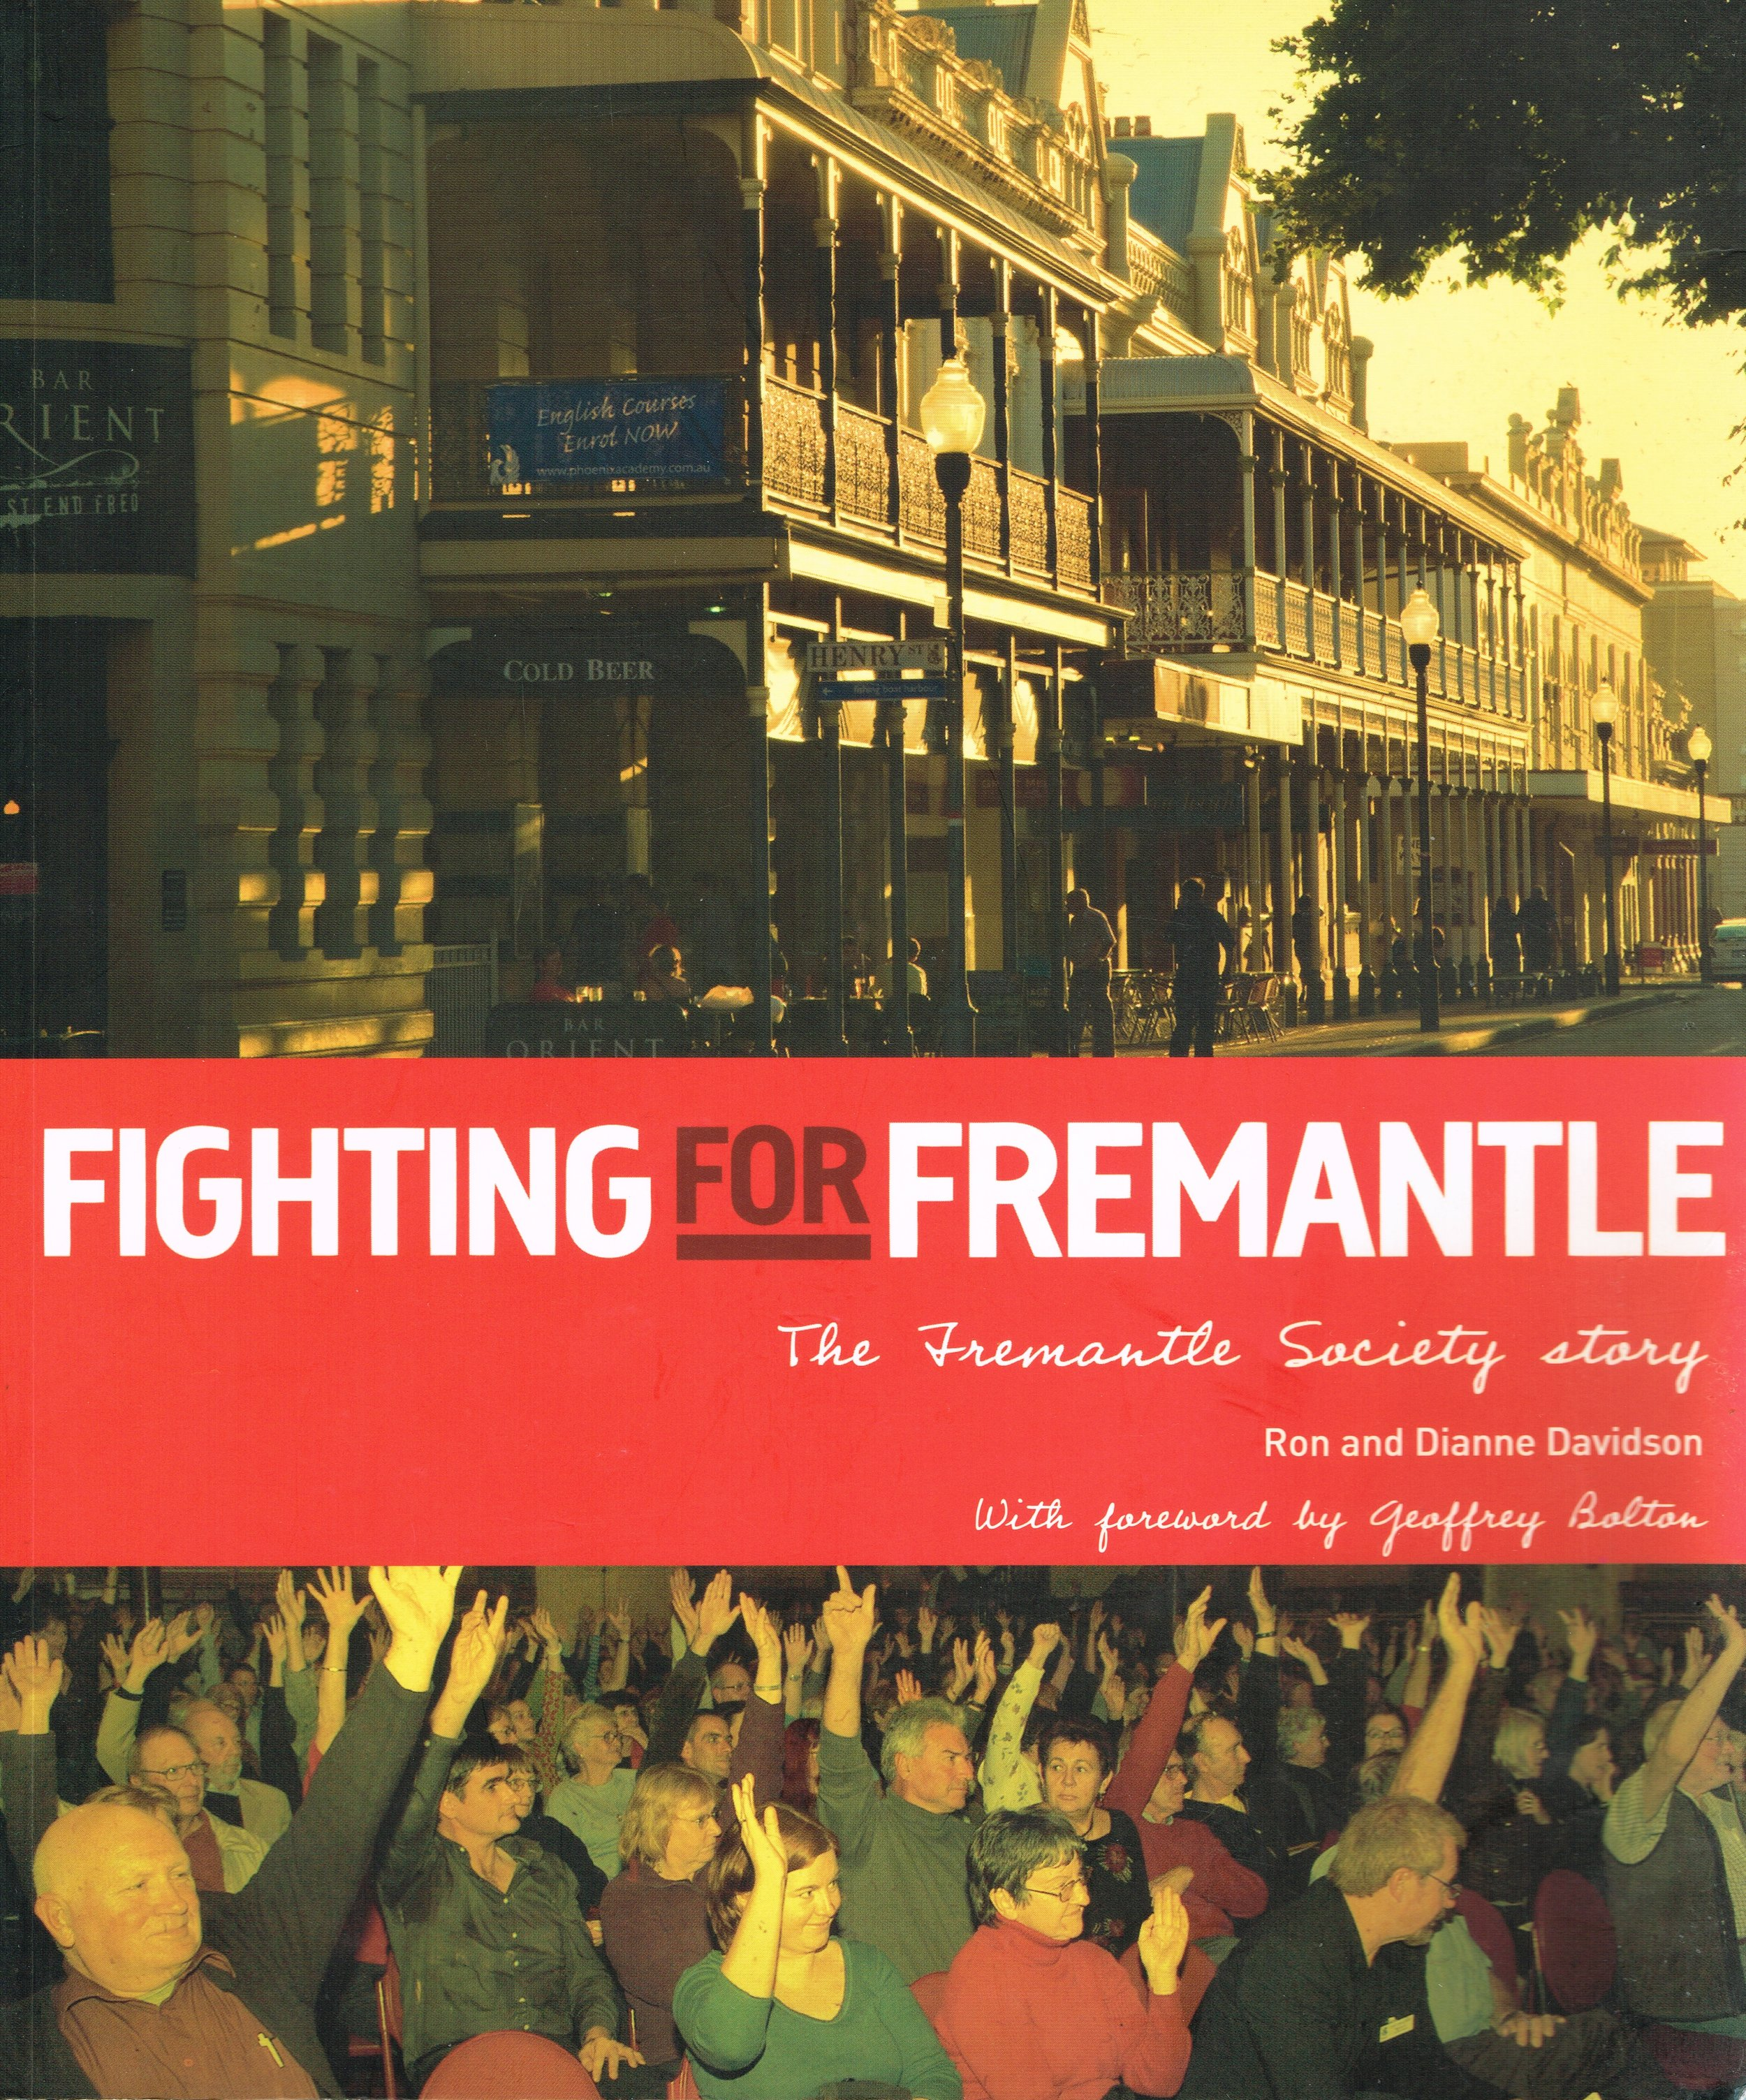 Fighting for Fremantle : The Fremantle Society story  Ron and Dianne David, with forward by Geoffrey Bolton